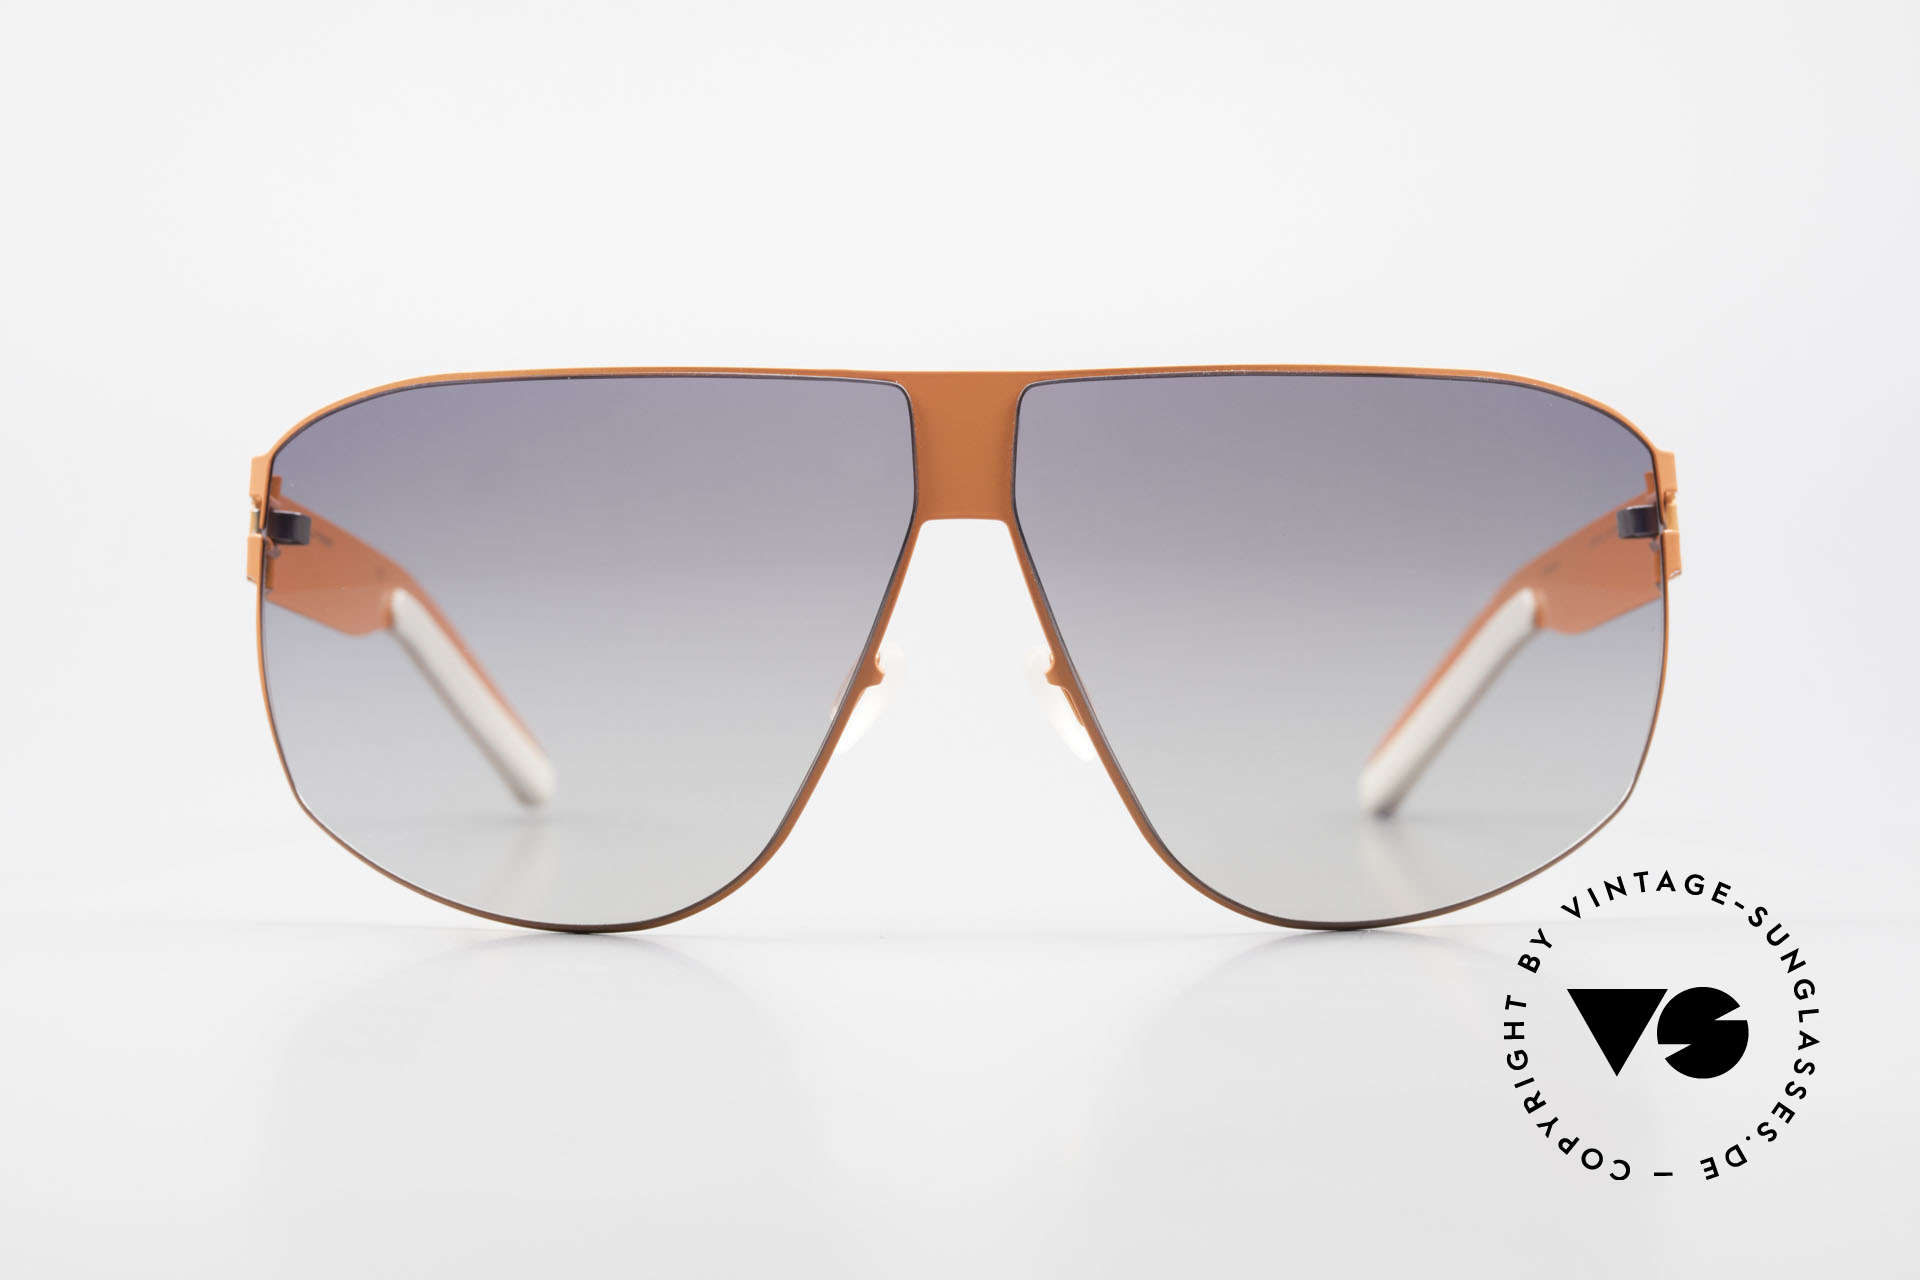 Mykita Terrence Mykita Shades Neonorange, MYKITA: the youngest brand in our vintage collection, Made for Men